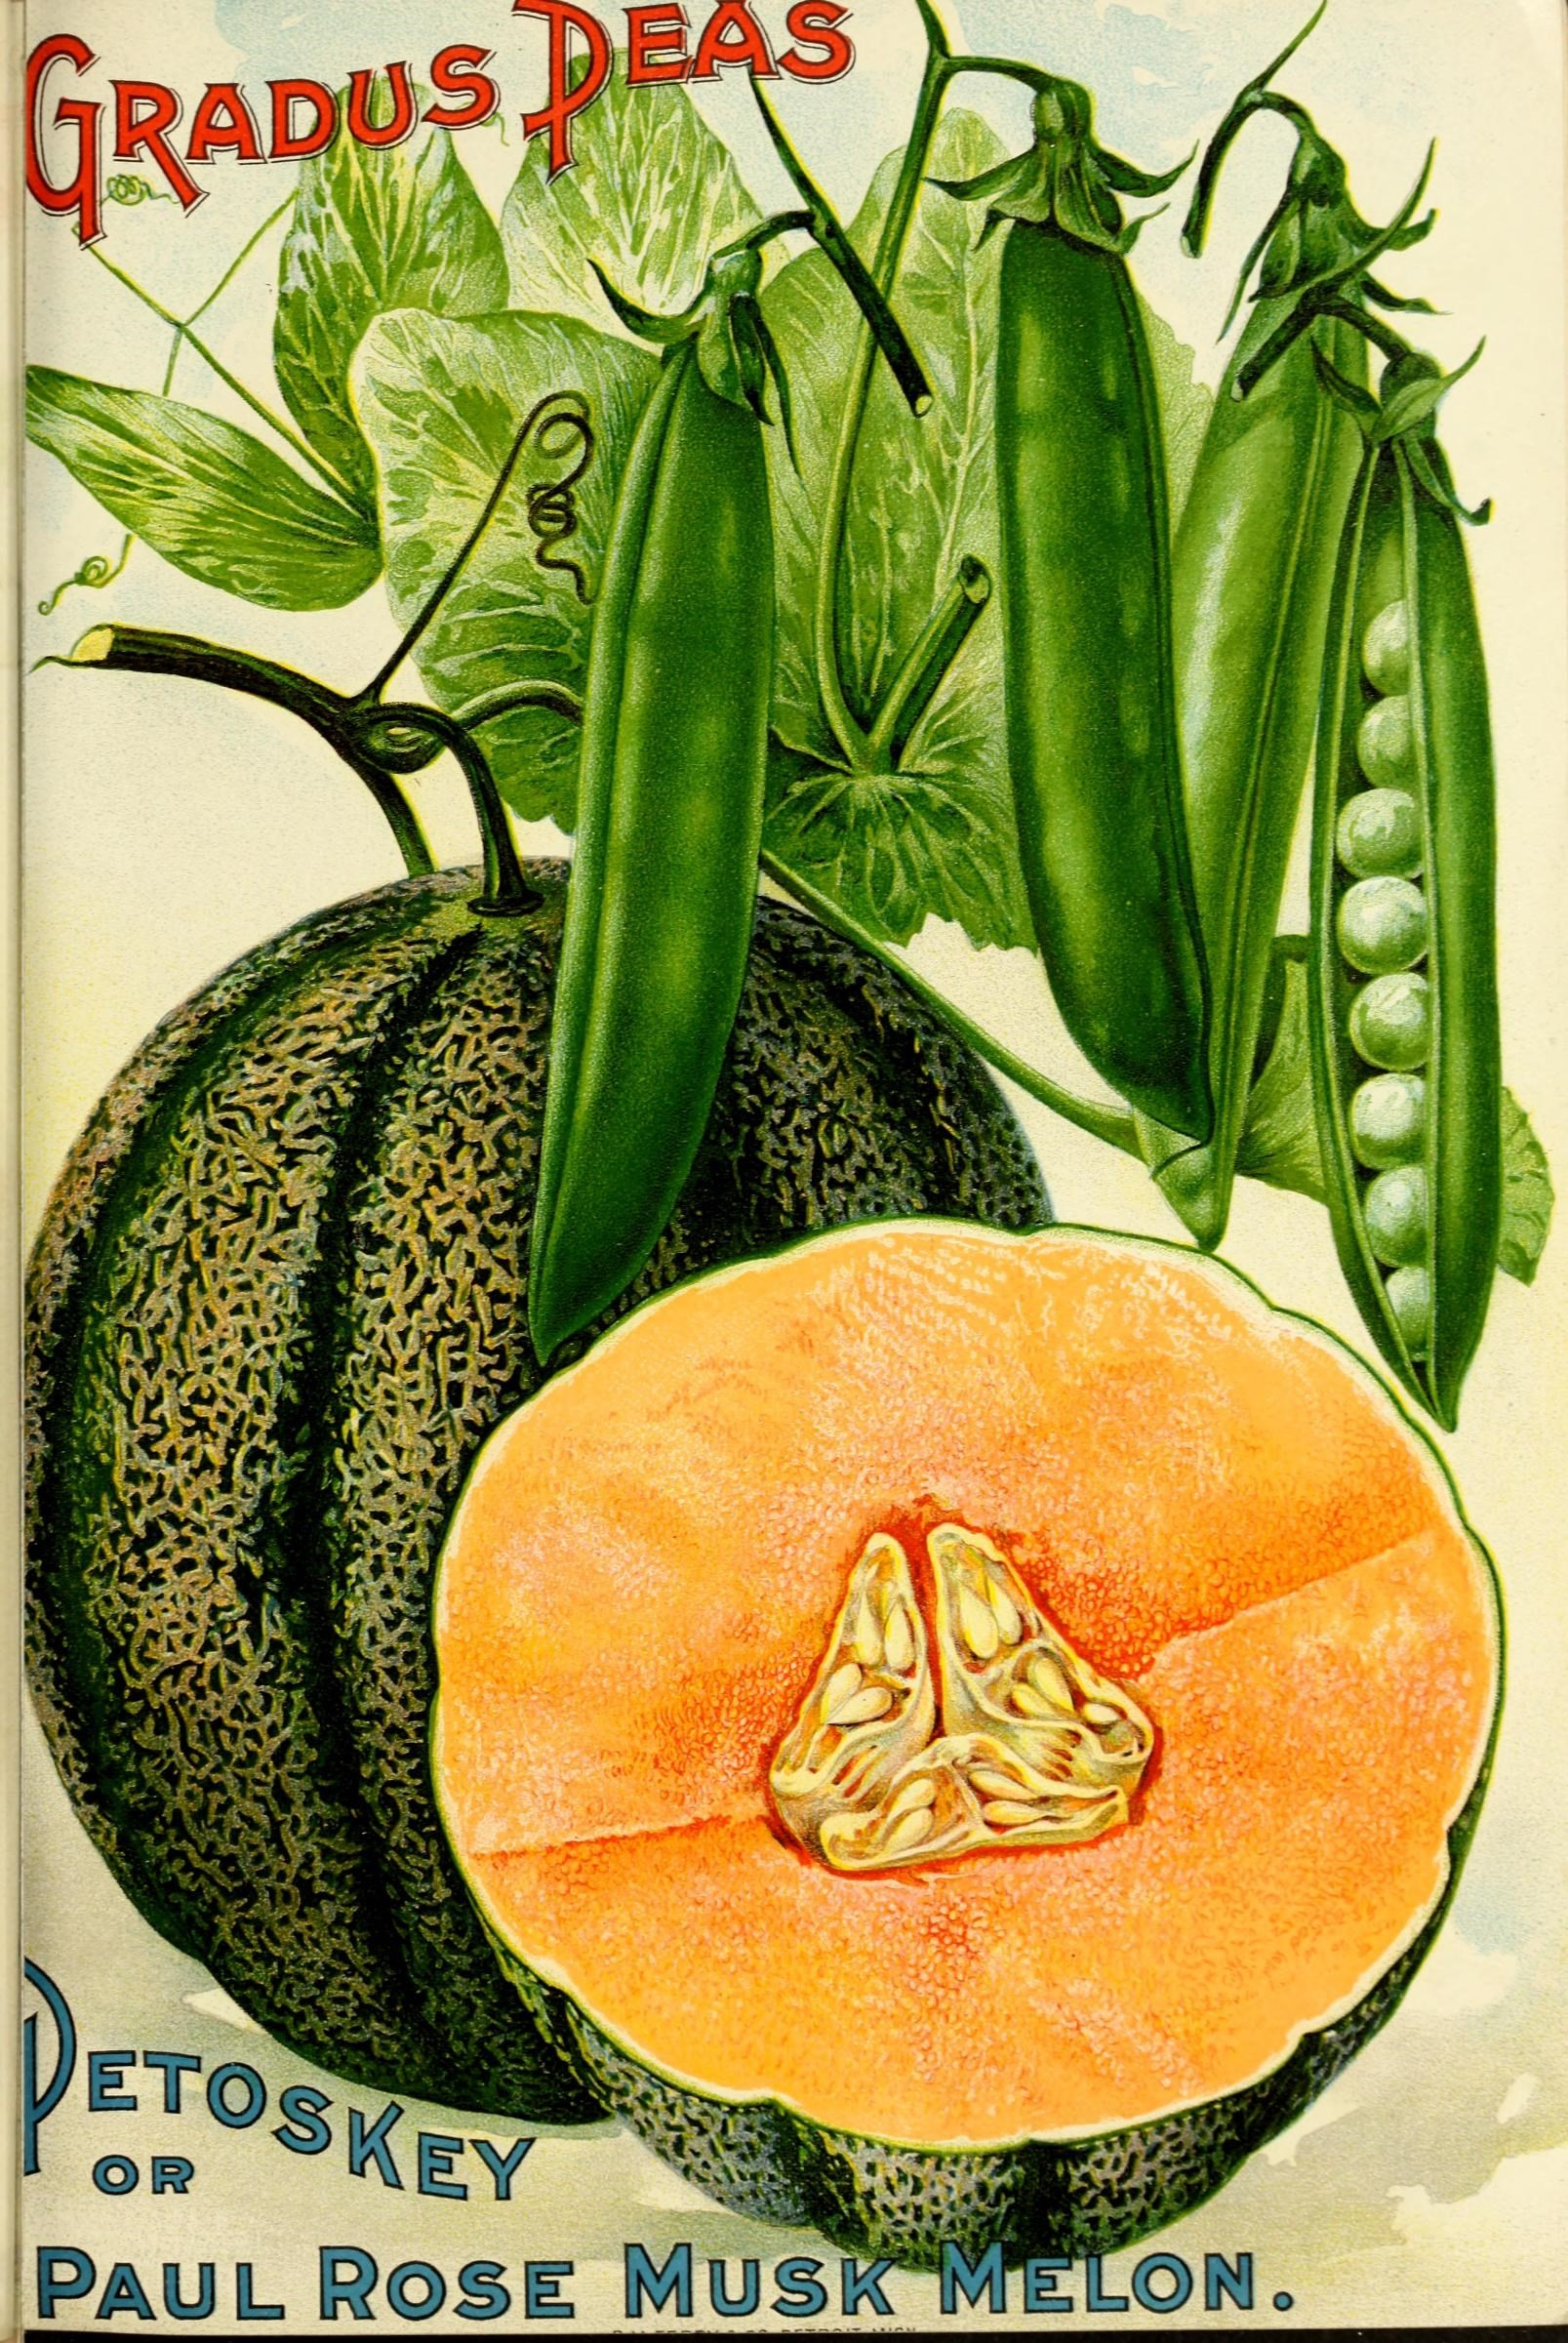 Scientific Illustration of peas and musk melon, from an 1899 seed catalog